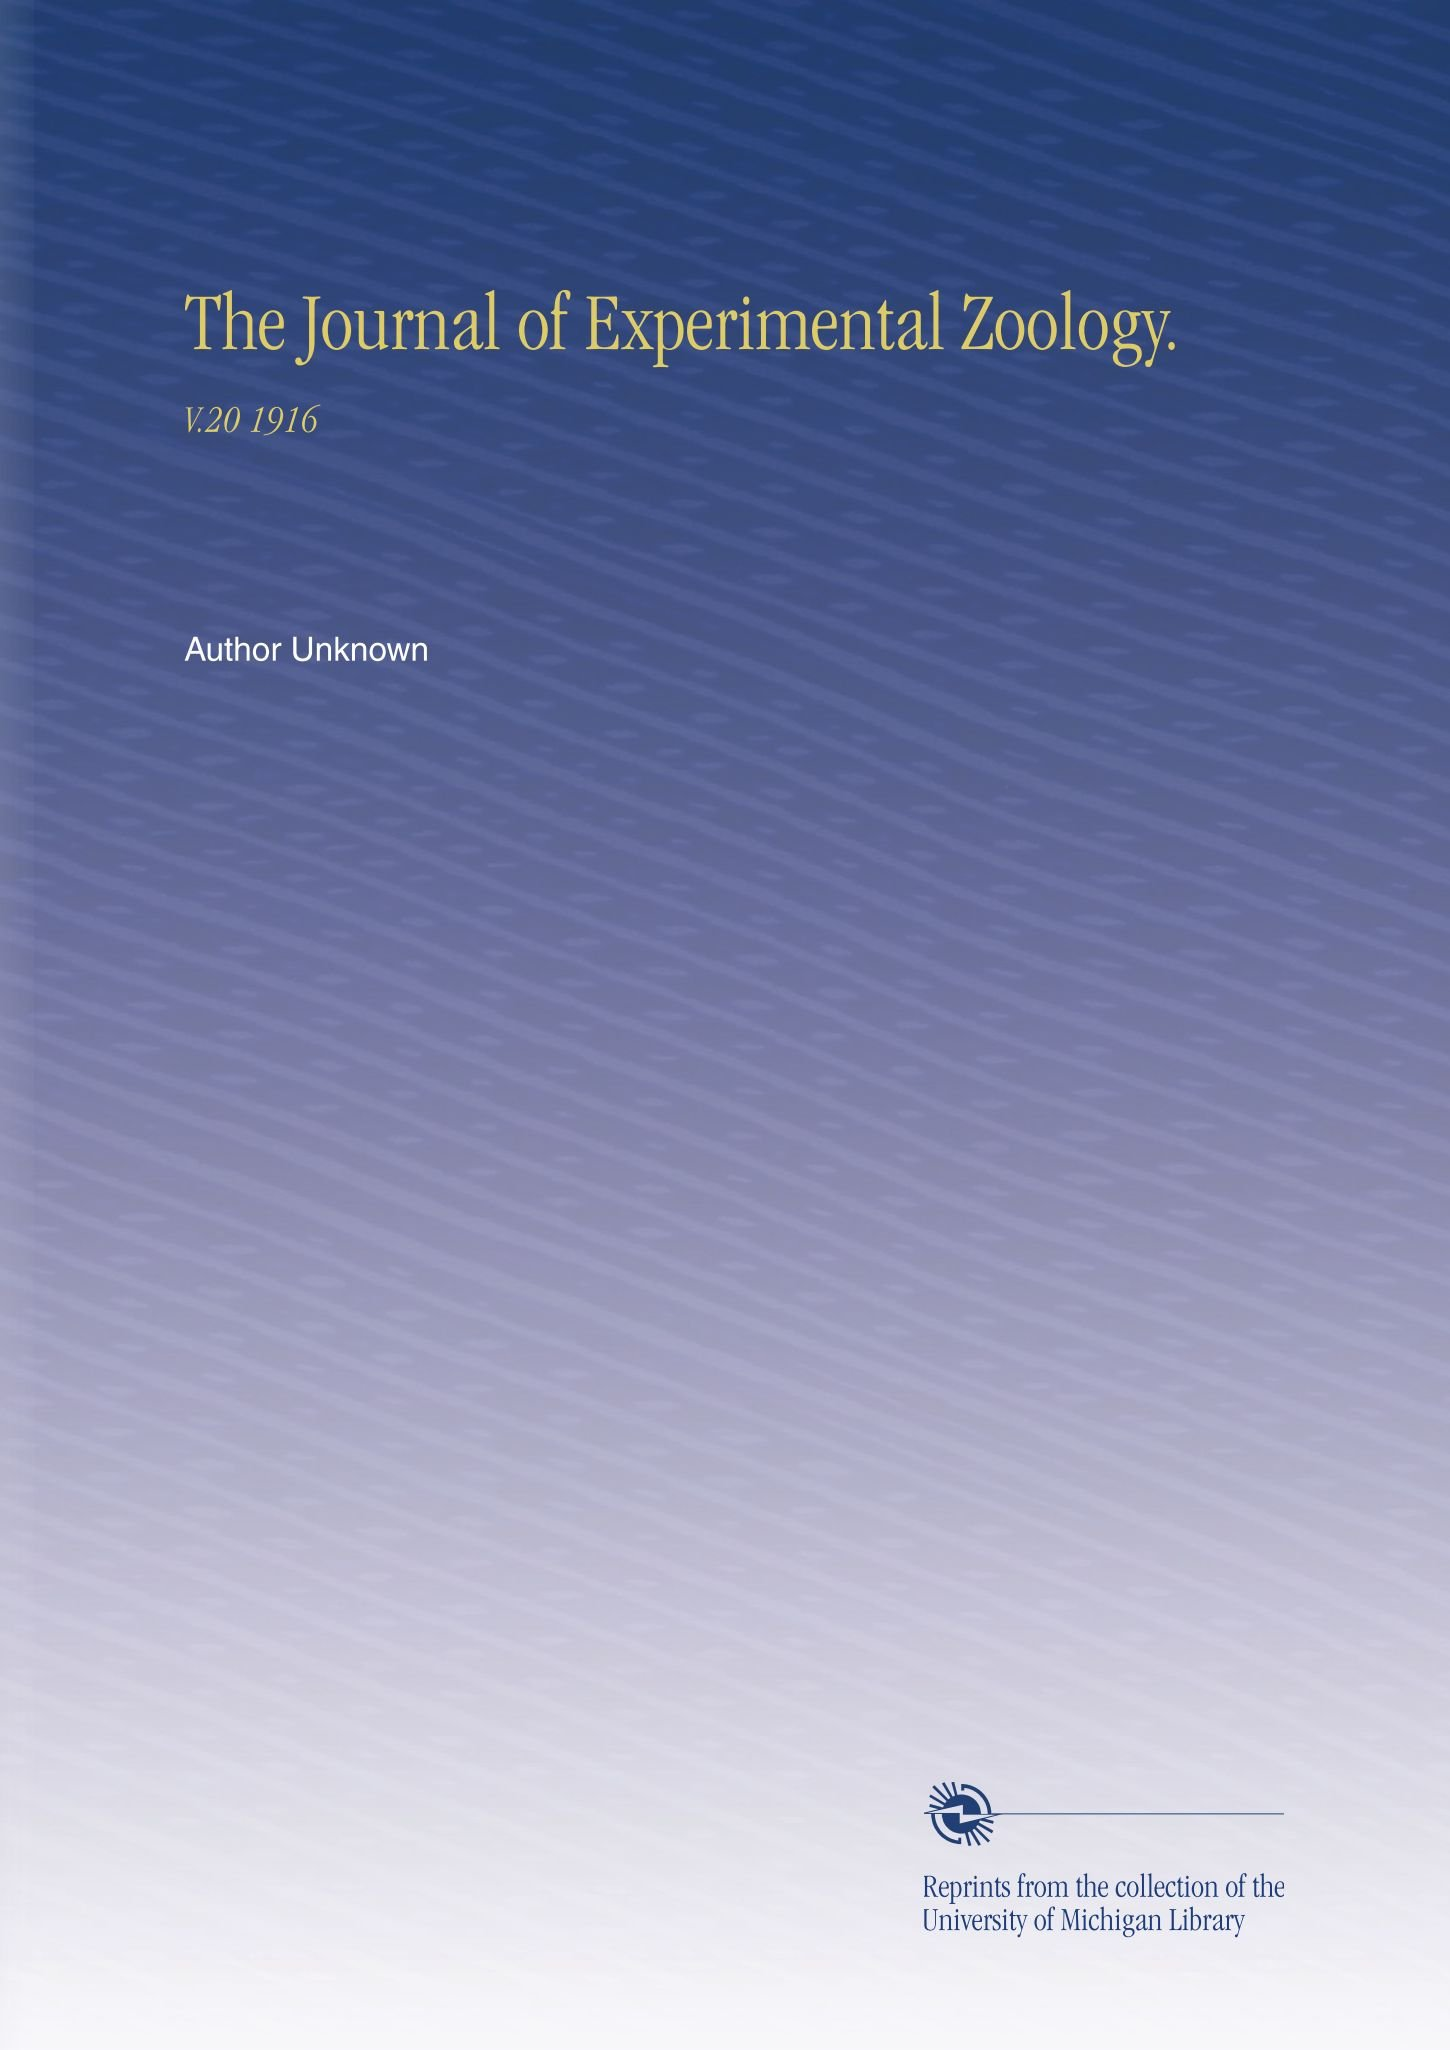 Download The Journal of Experimental Zoology.: V.20 1916 ebook